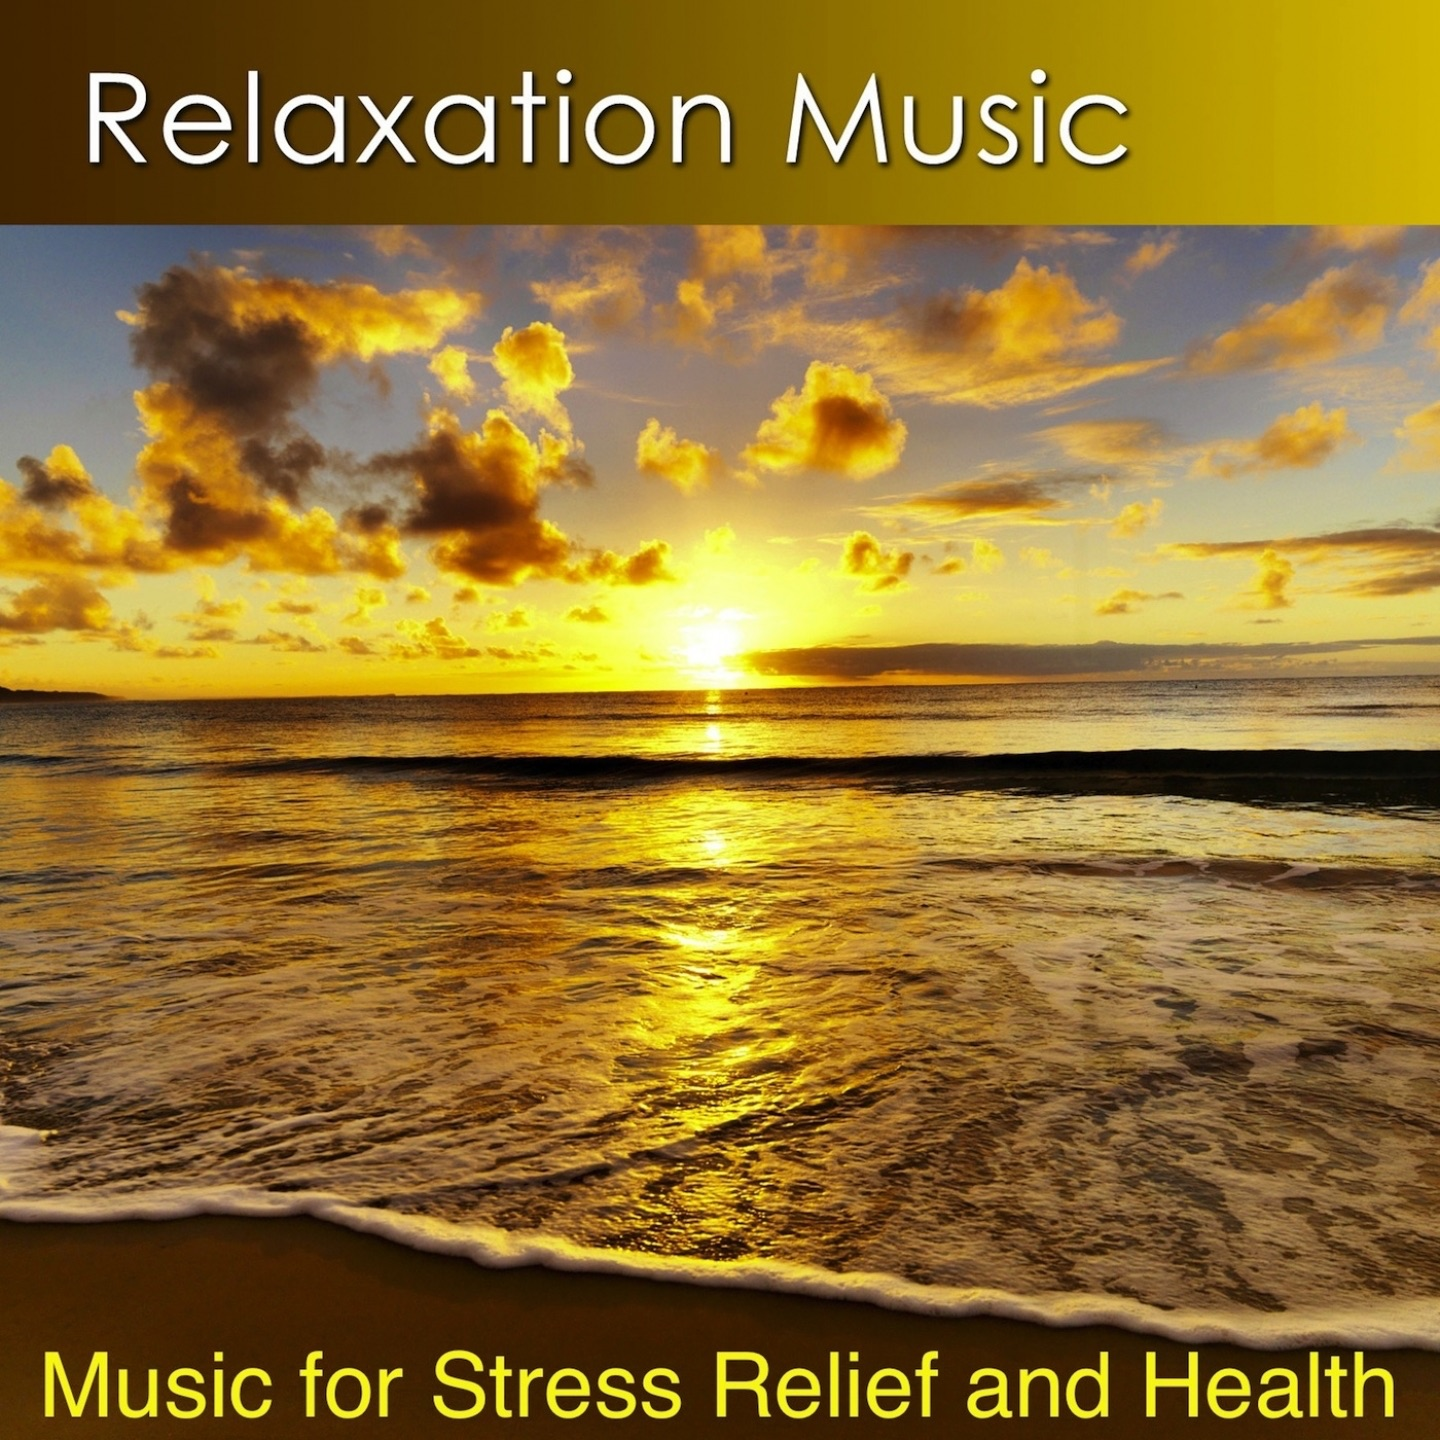 Music of Cosmic Reflection (Relaxation Music for Stress Relief and Health)